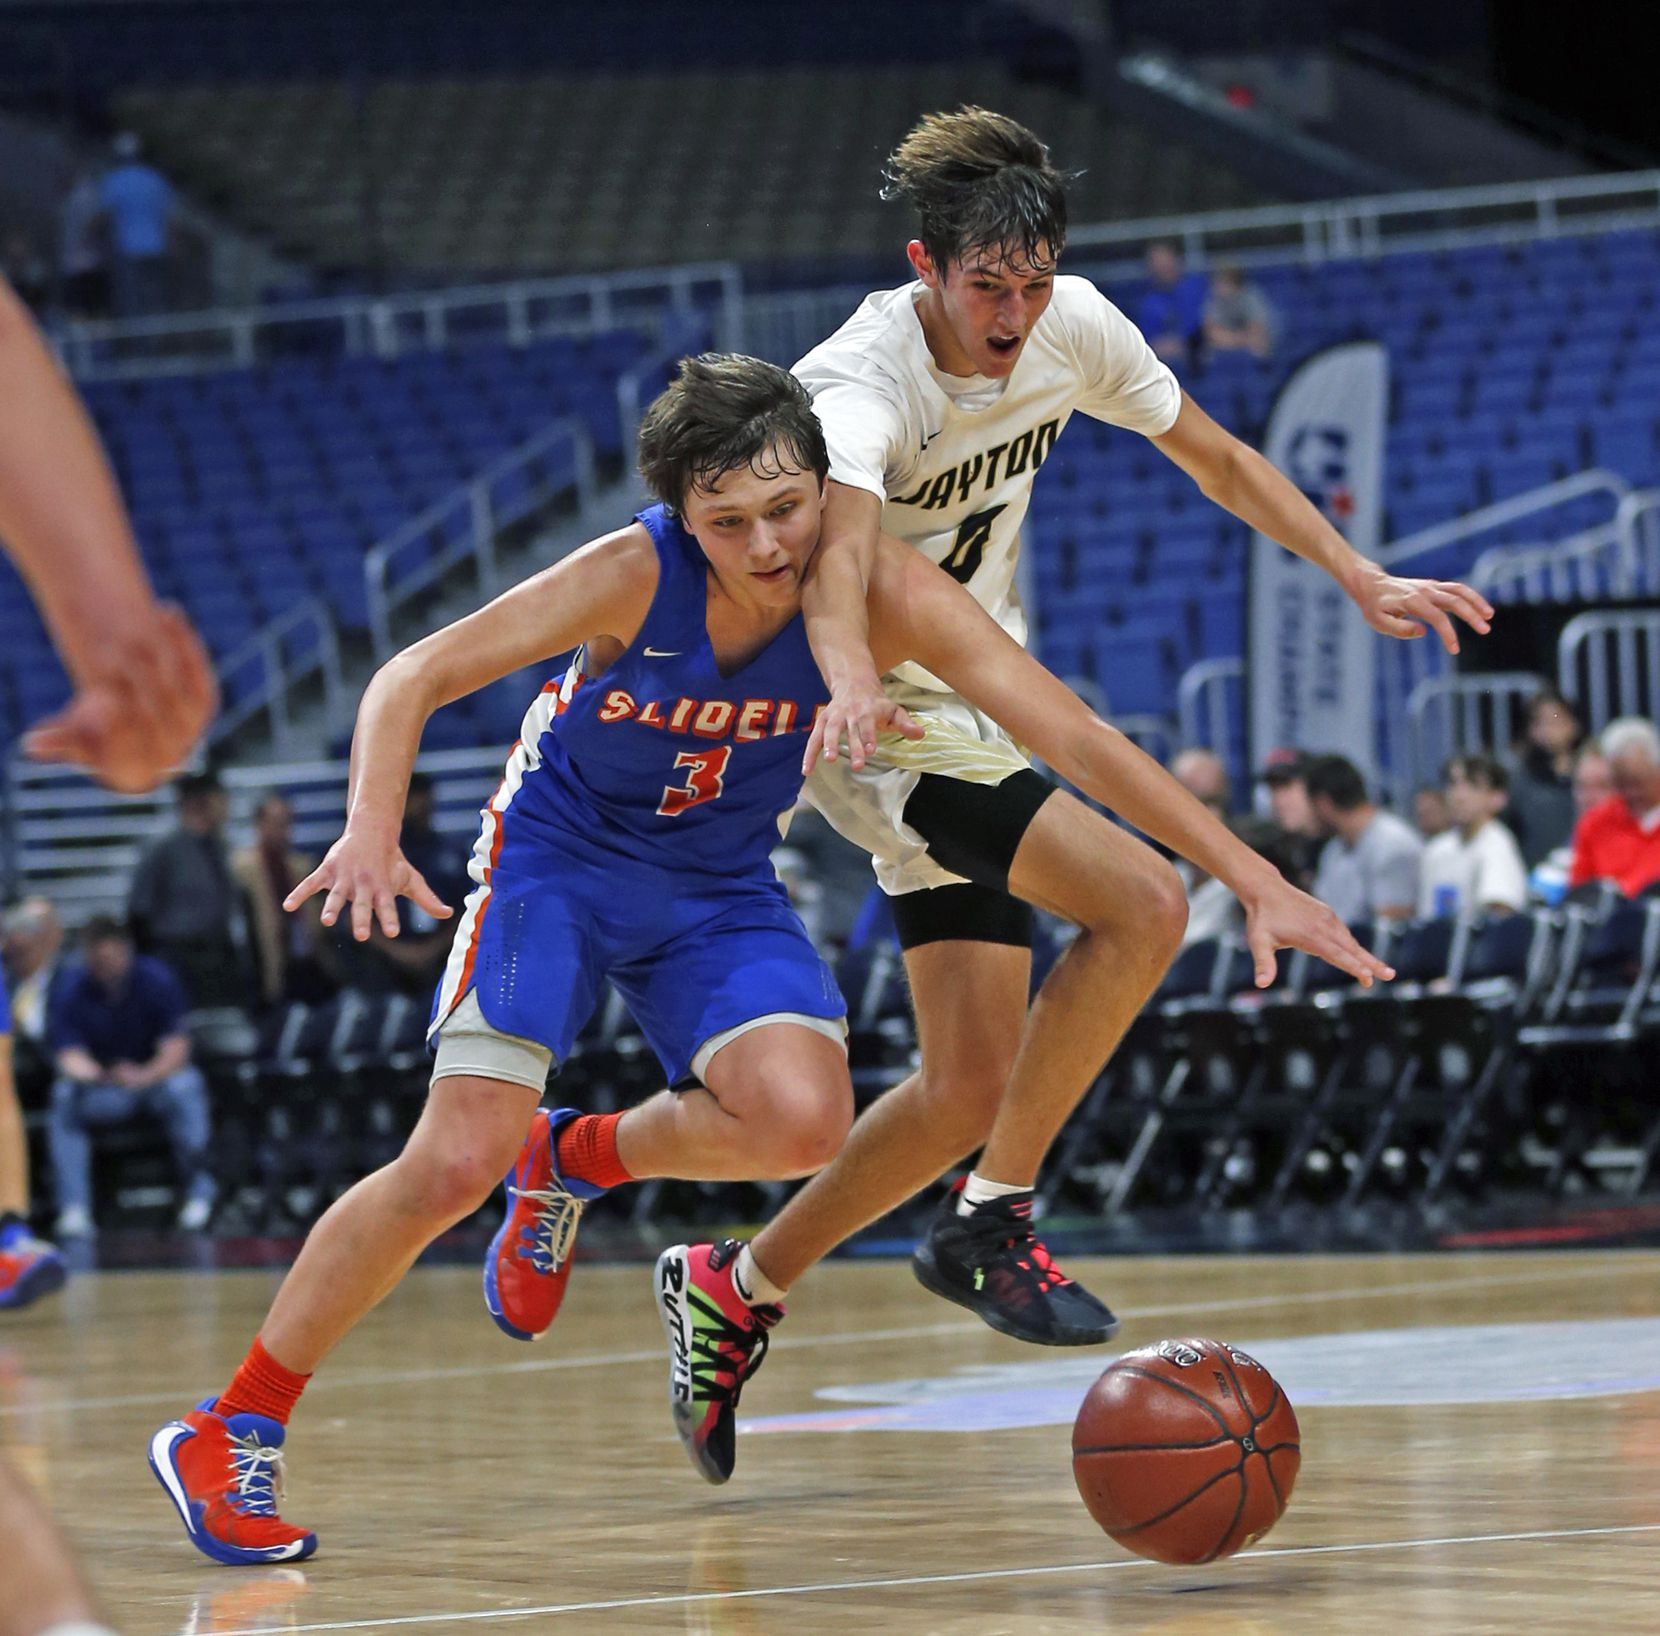 Slidell guard Brock Harwell #3 goes for a loose ball with Jayton center Alex Chisum #4. Slidell defeated Jayton 45-28 in a Class 1A semifinal game on Thursday, March 12, 2020 at the Alamodome.